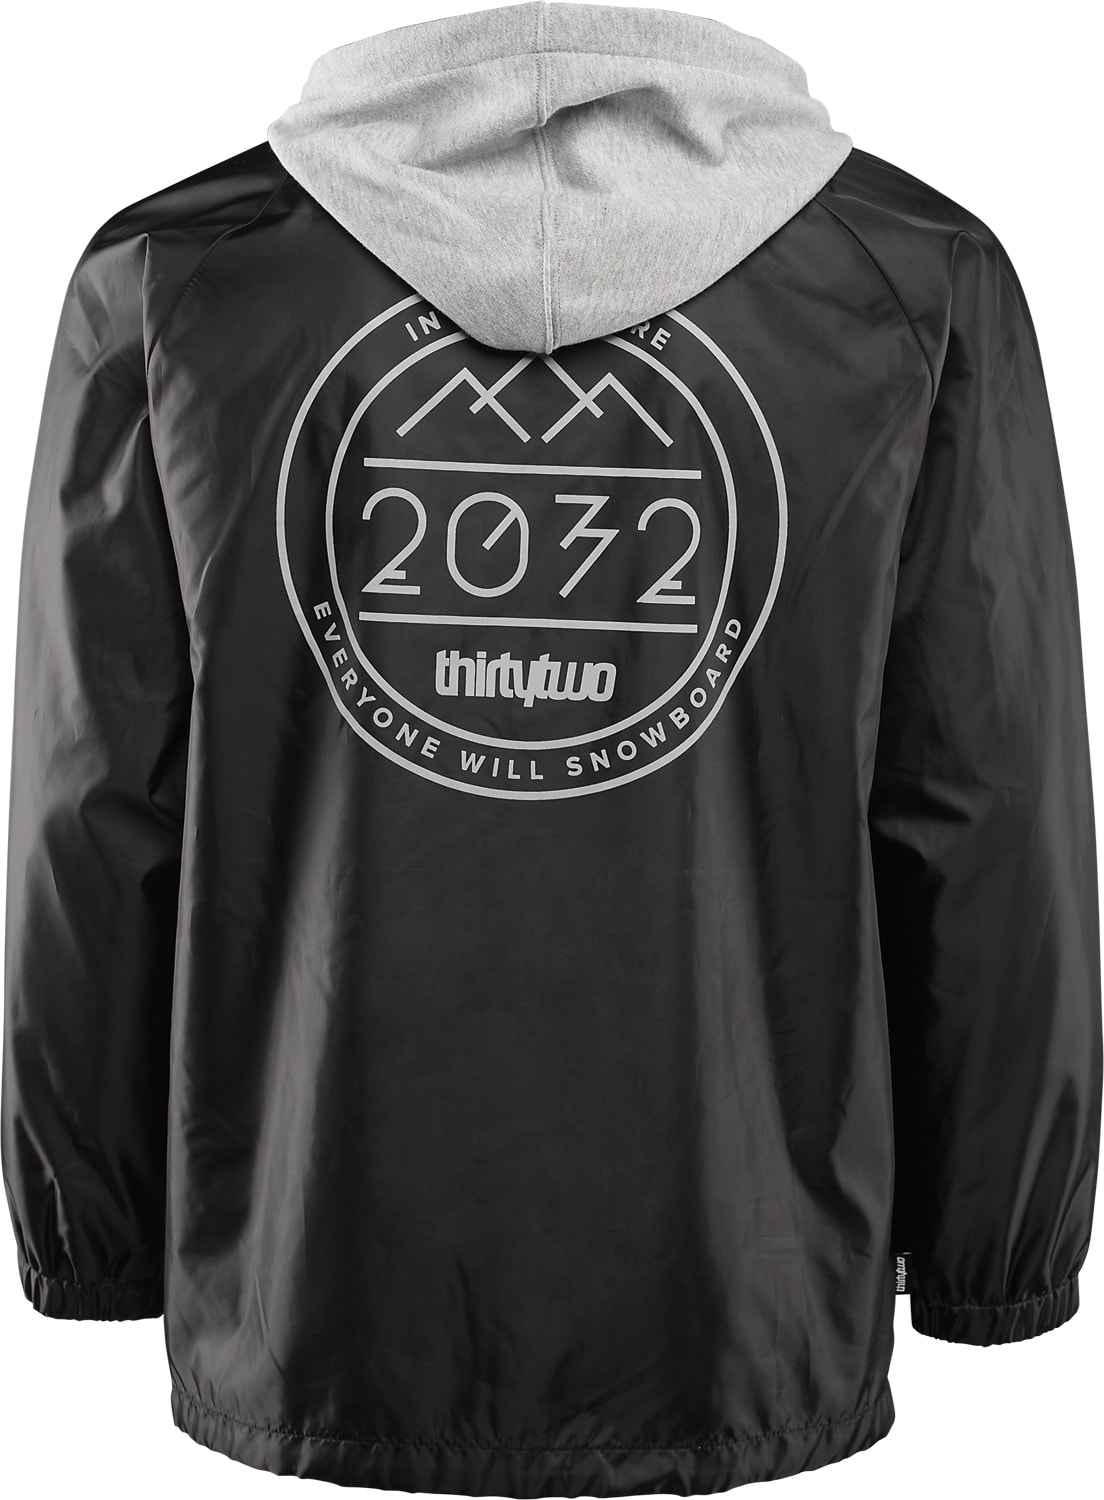 32 Thirty Two 2032 Hooded Coach Jacket